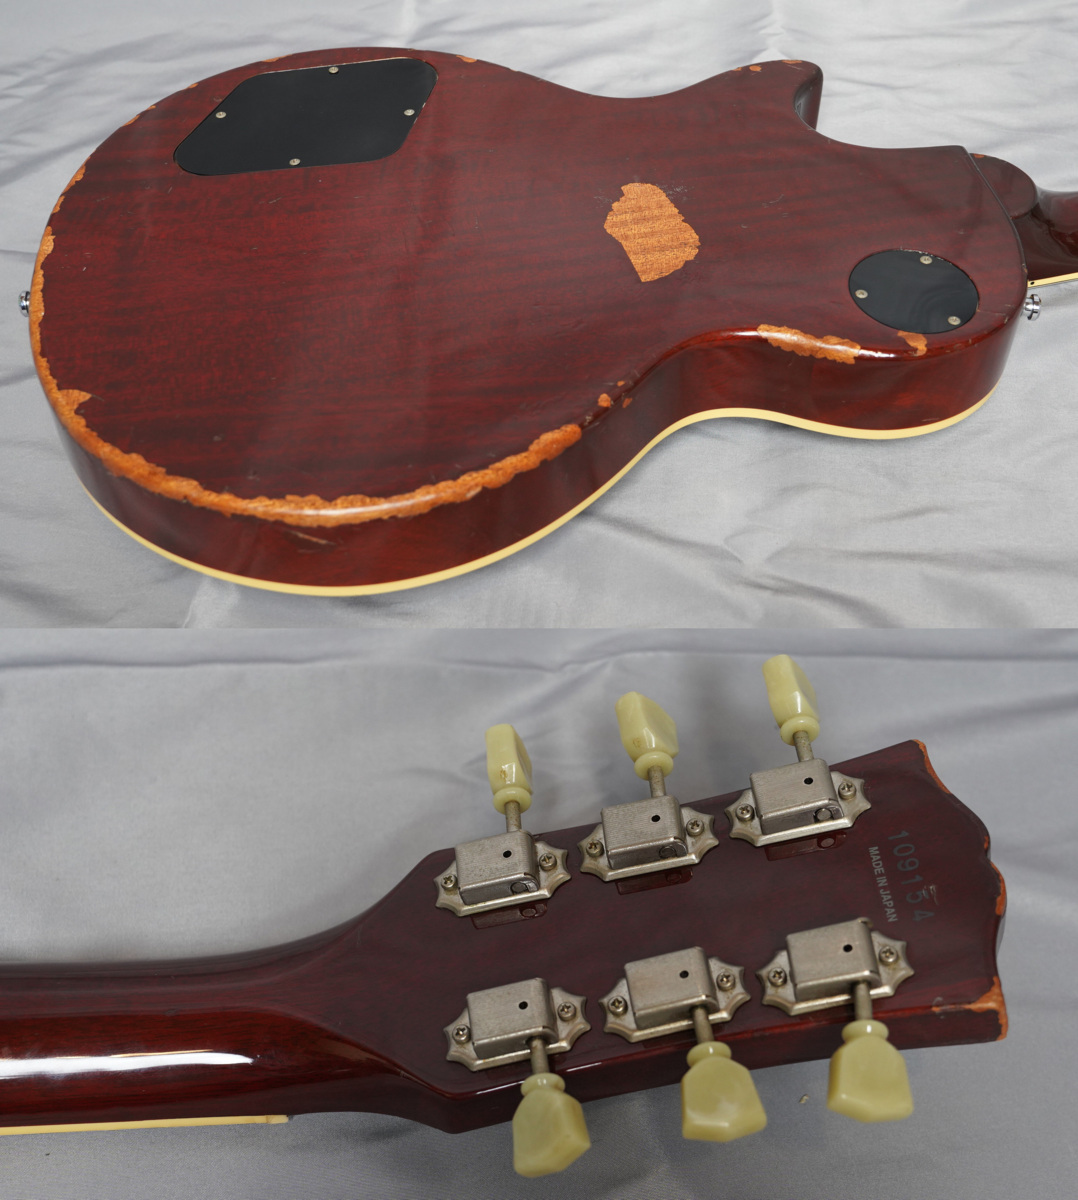 ★Epiphone Japan★Les Paul Standard LPS-80 HB MADE IN JAPAN 日本製 ヘヴィーレリック調 レスポール スタンダード エピフォン★_画像3